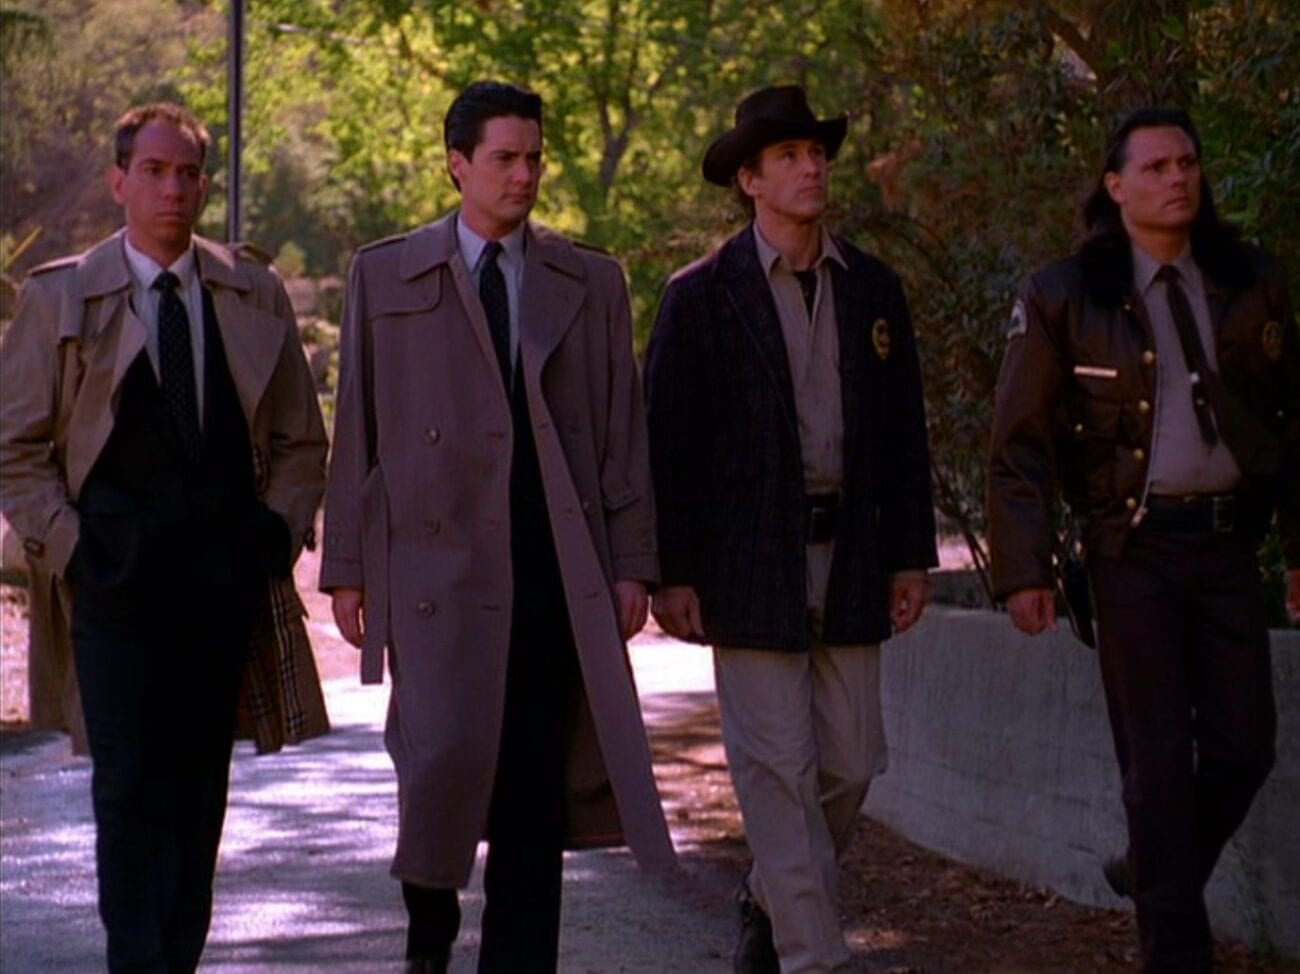 Two FBI agents and two police officers, Albert, Dale, Harry, and Hawk, walk down a sidewalk in a line.